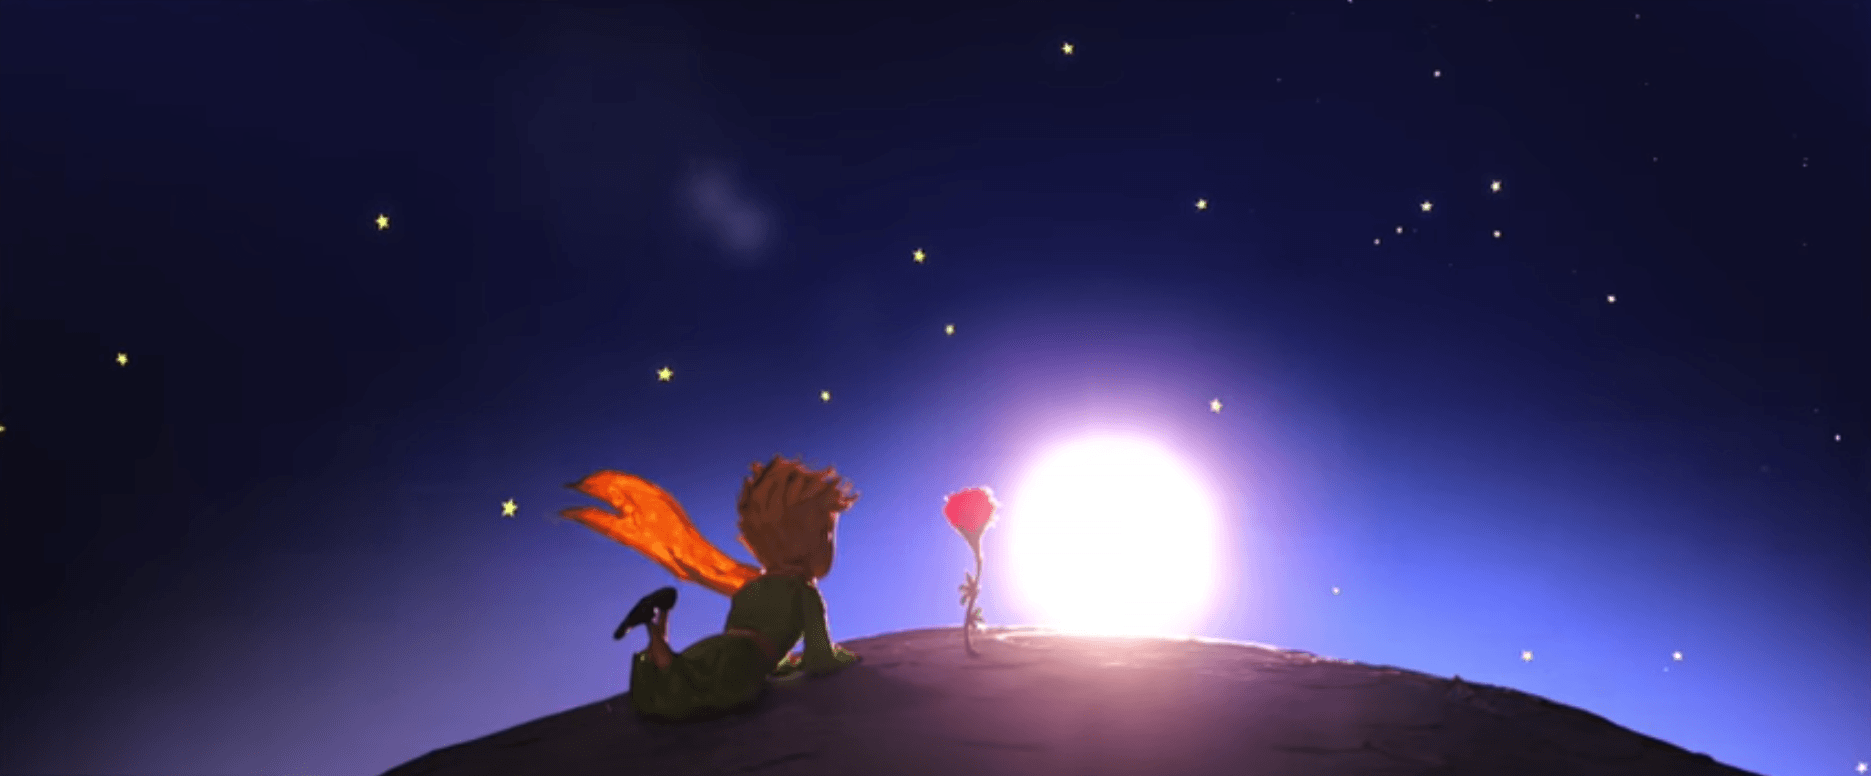 The Little Prince Review